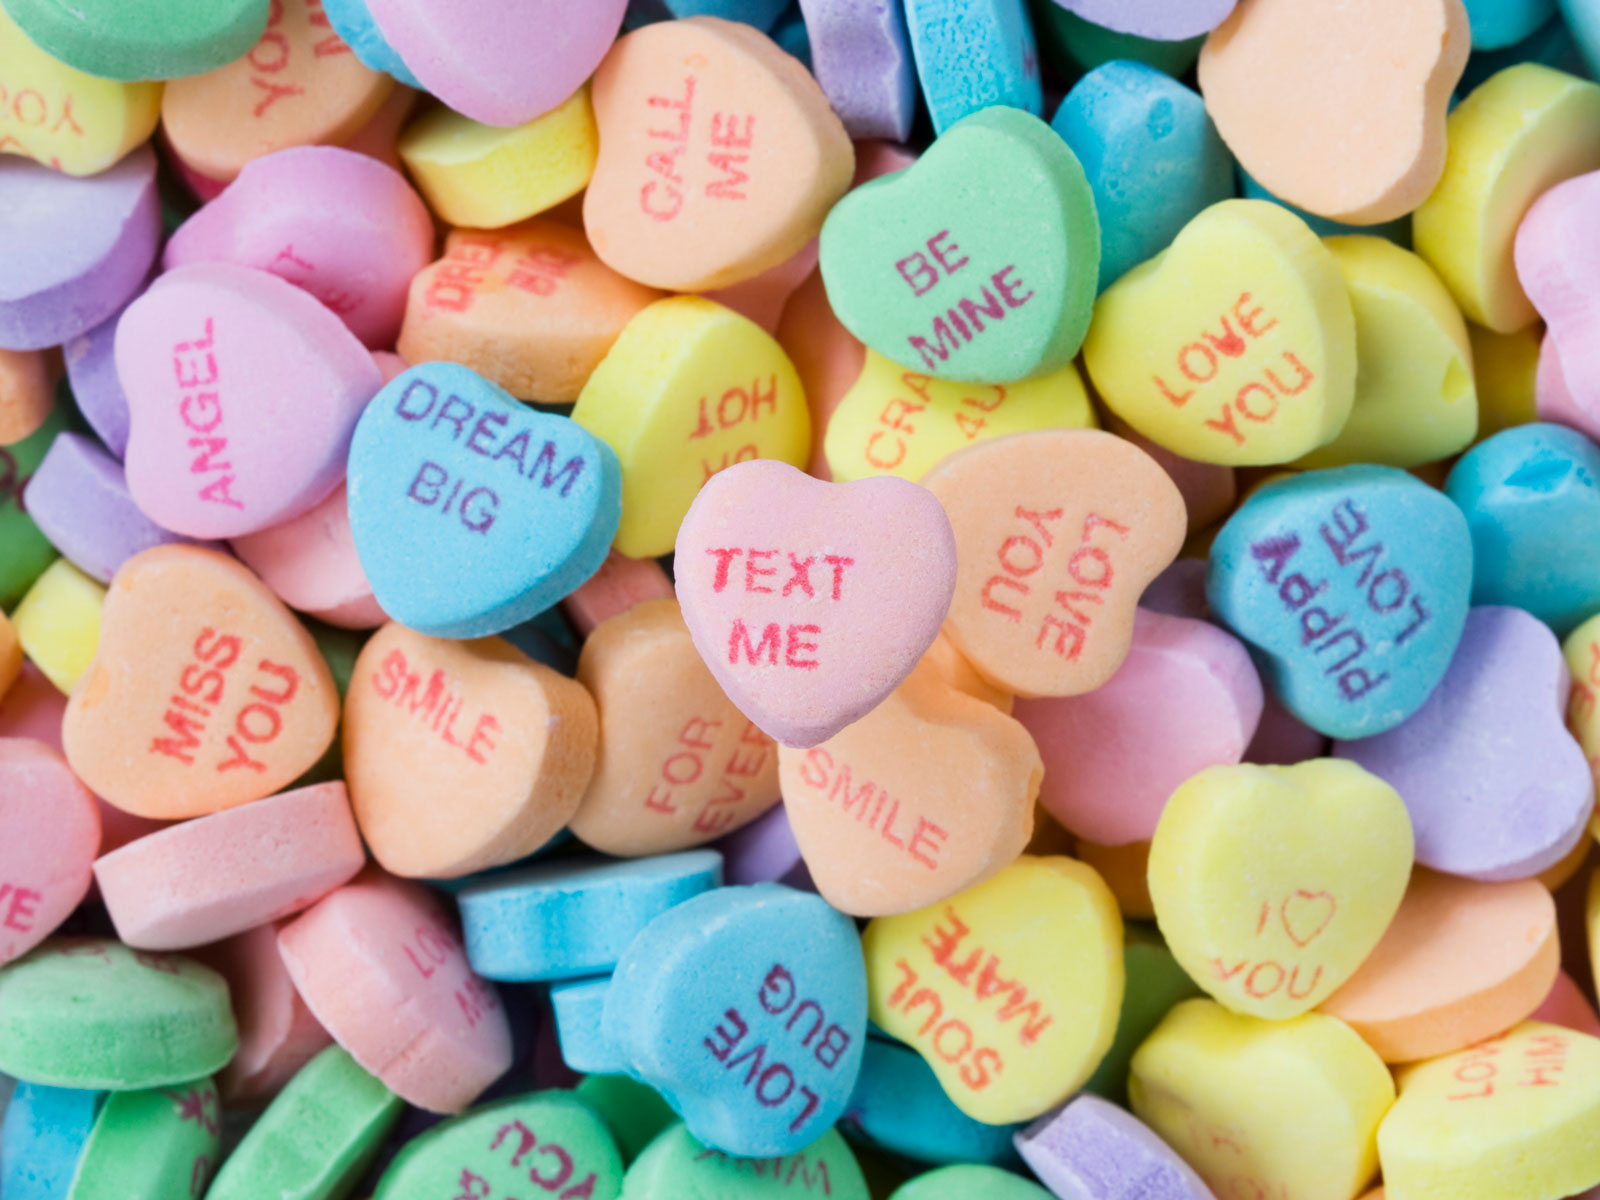 Why Conversation Hearts Might Not Be as Ubiquitous This Valentine's Day